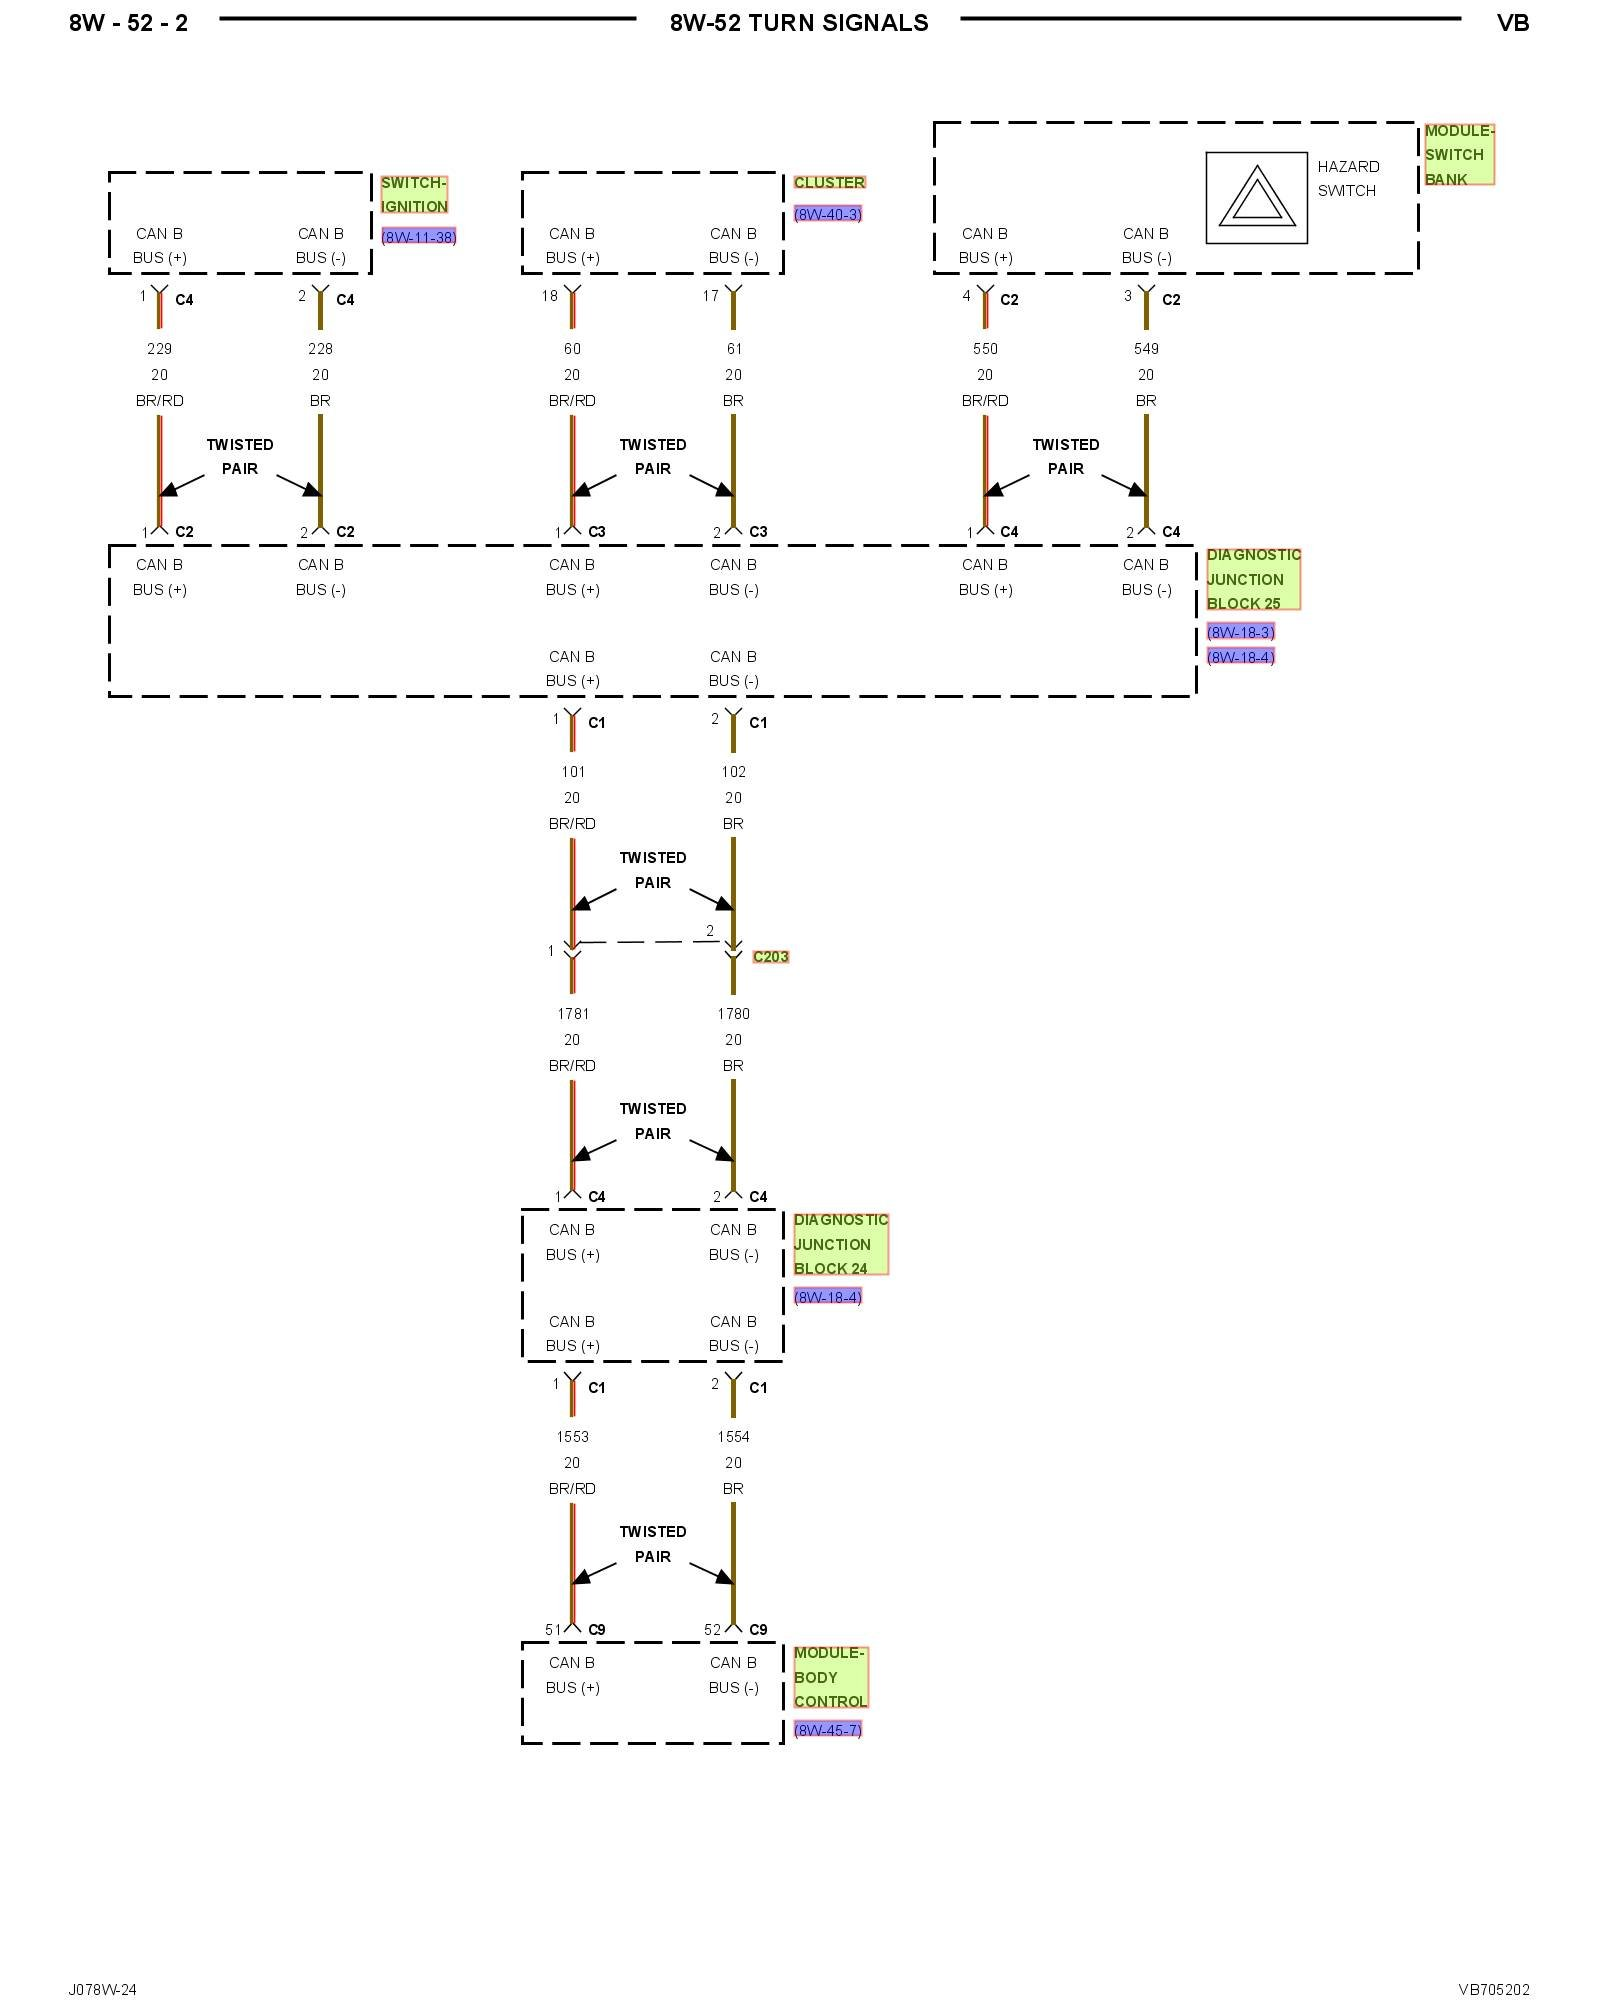 2006 Dodge Cummins Wiring Diagram from www.justanswer.com